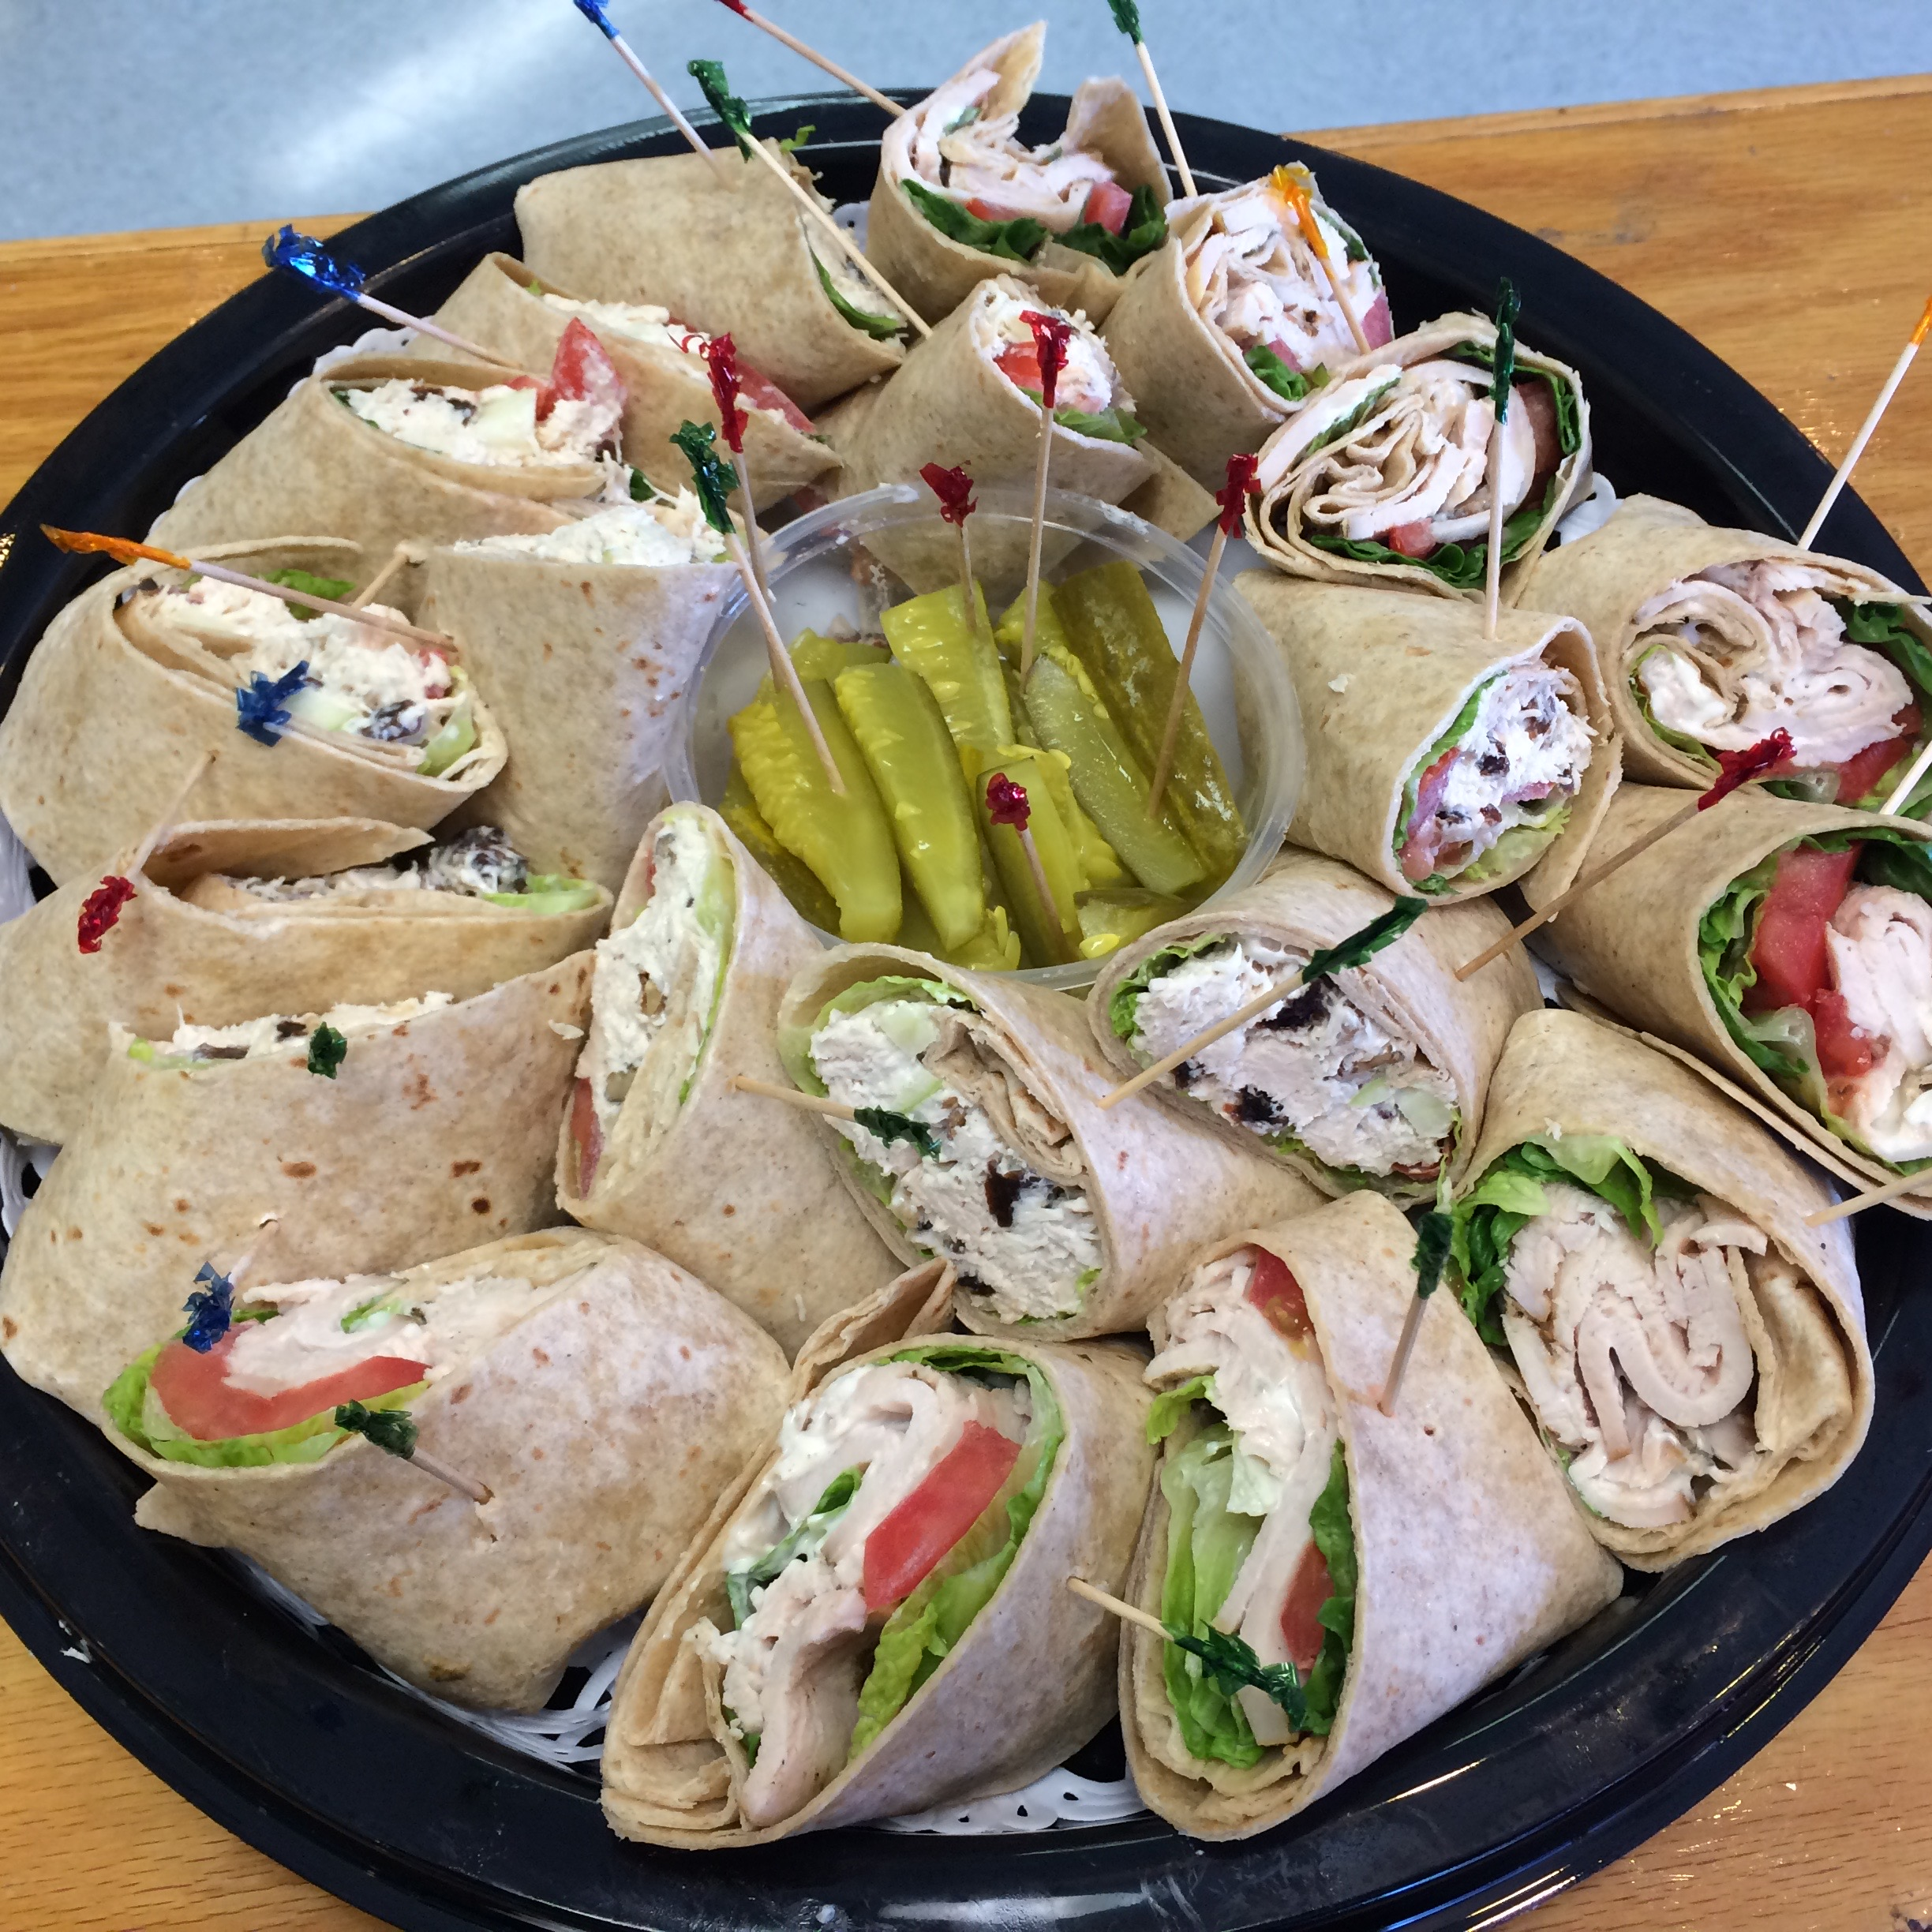 Sandwich Tray - Your choice of bagels, honey wheat wraps, croissant or a mixture of all, harmonized with our hand carved, herb crusted turkey breast, Waldorf chicken salad, white albacore tuna, or our famous egg salad. All served with lettuce, tomato, onion, and pickles.$45.95